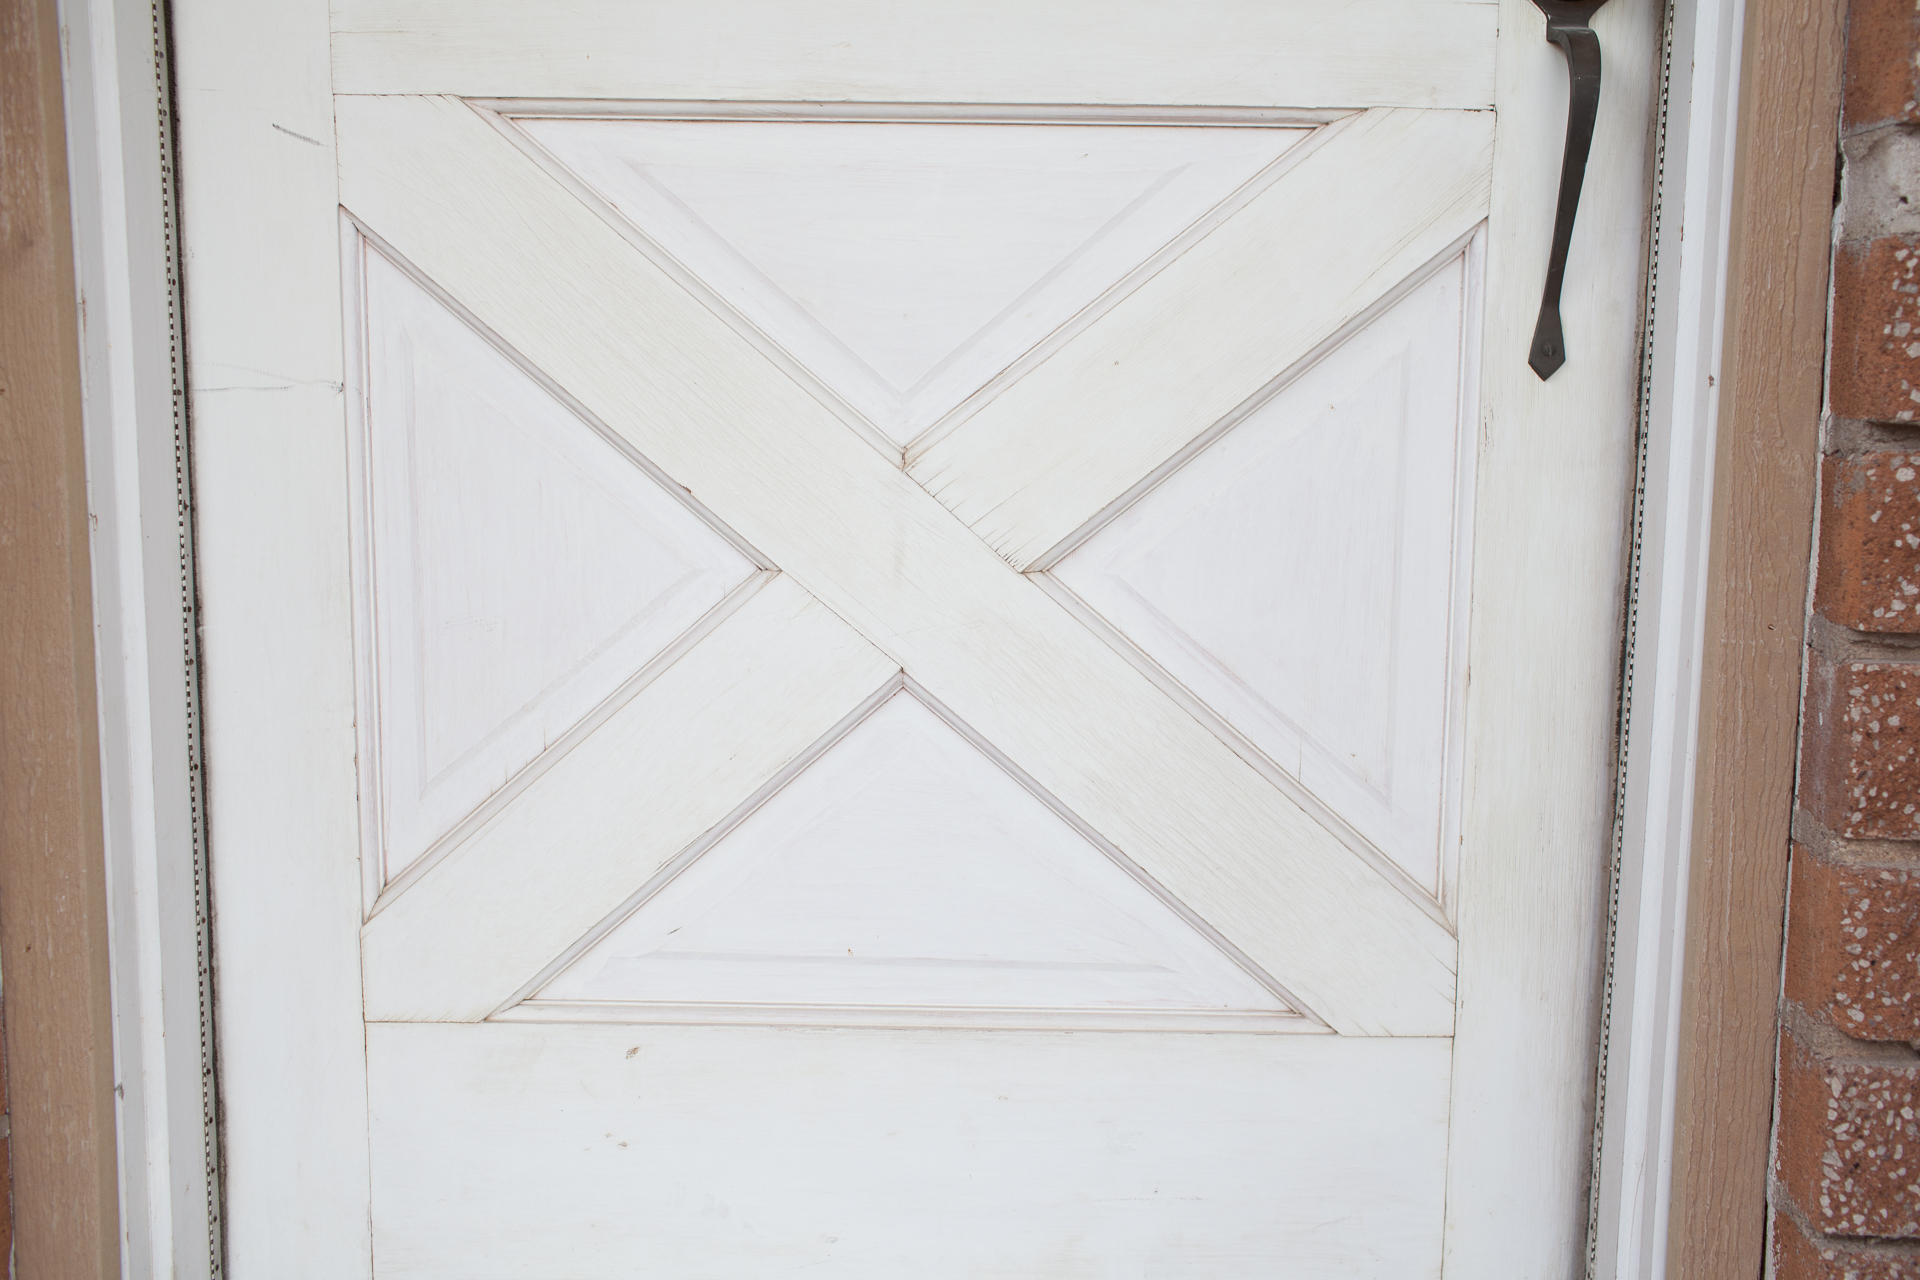 So learning how to refinish a front door is smart if youu0027re looking for a quick and affordable home makeover. & How to Refinish a Front Door the Right Way